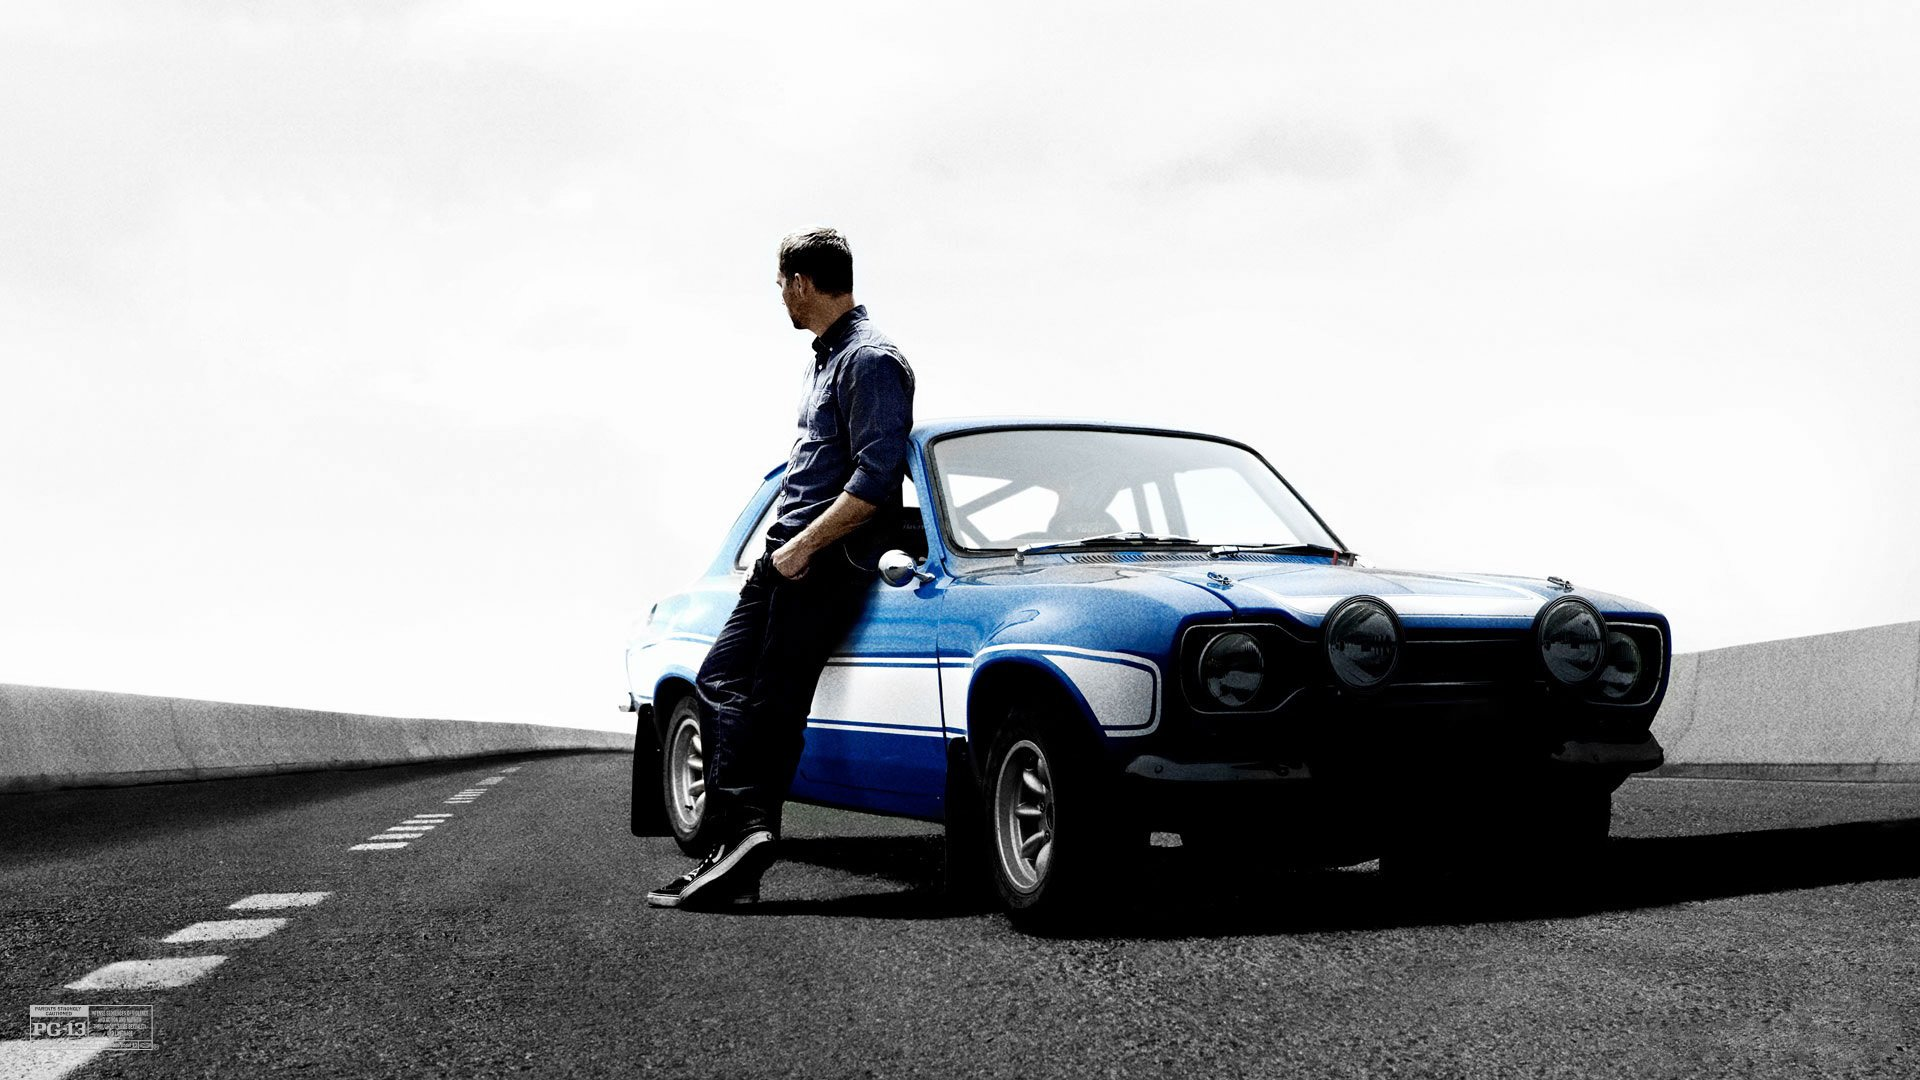 Fast Furious 6 Hd Wallpaper Background Image 1920x1080 Id